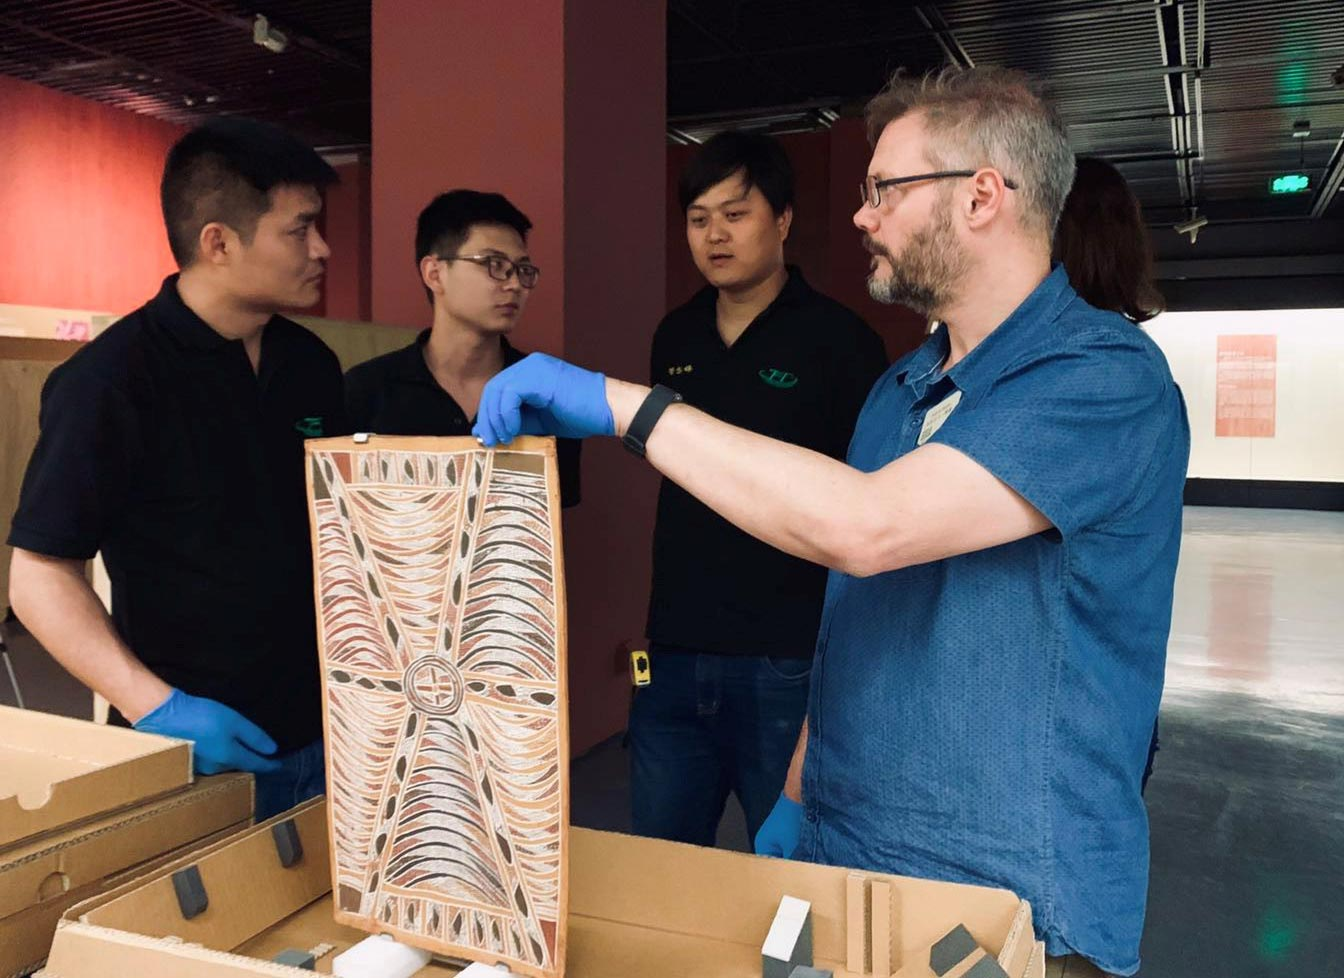 Four men inspect a bark painting in a gallery. - click to view larger image